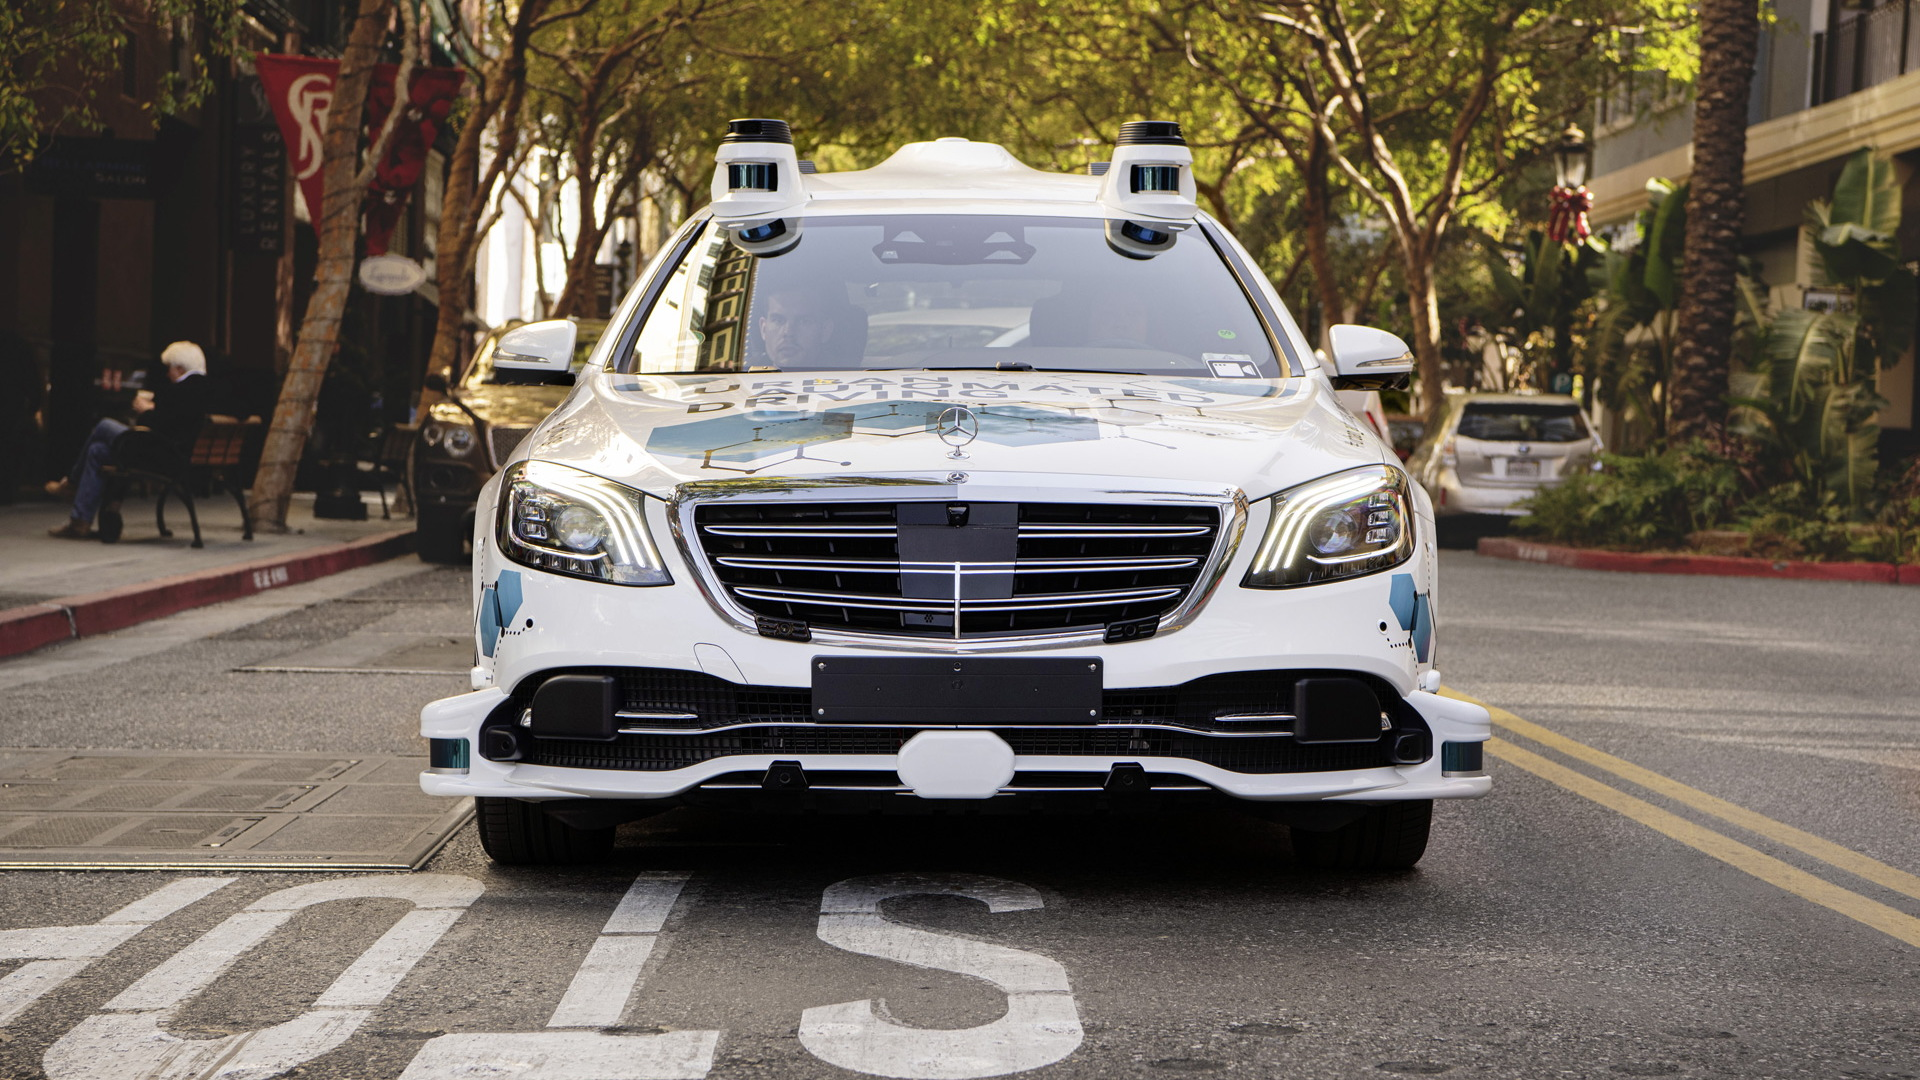 Daimler and Bosch self-driving car prototype in Silicon Valley